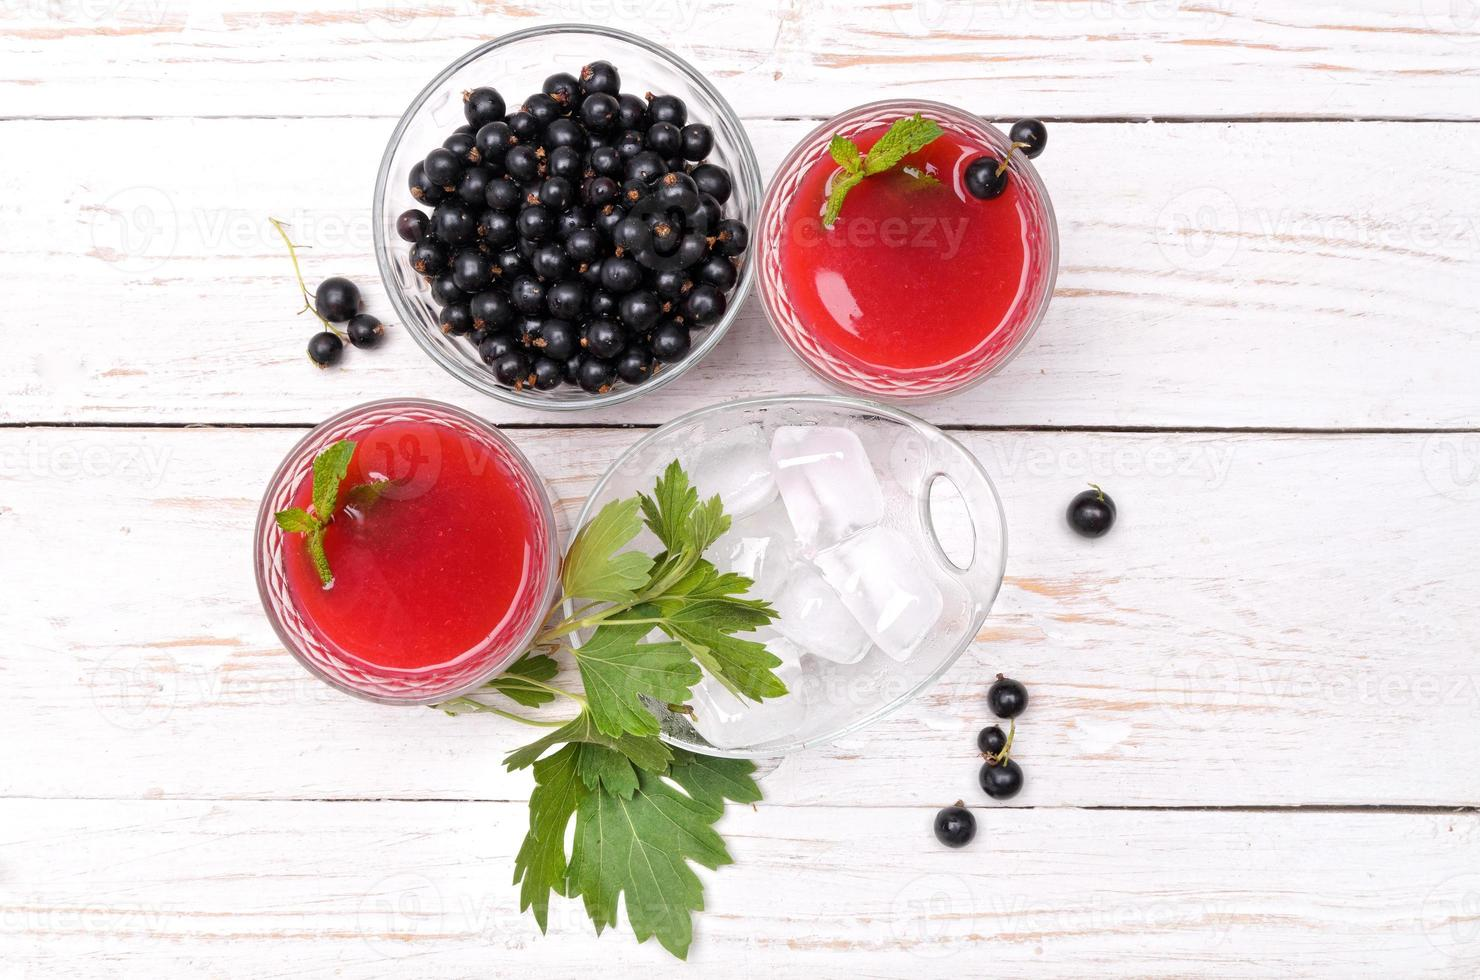 Currant drink. photo